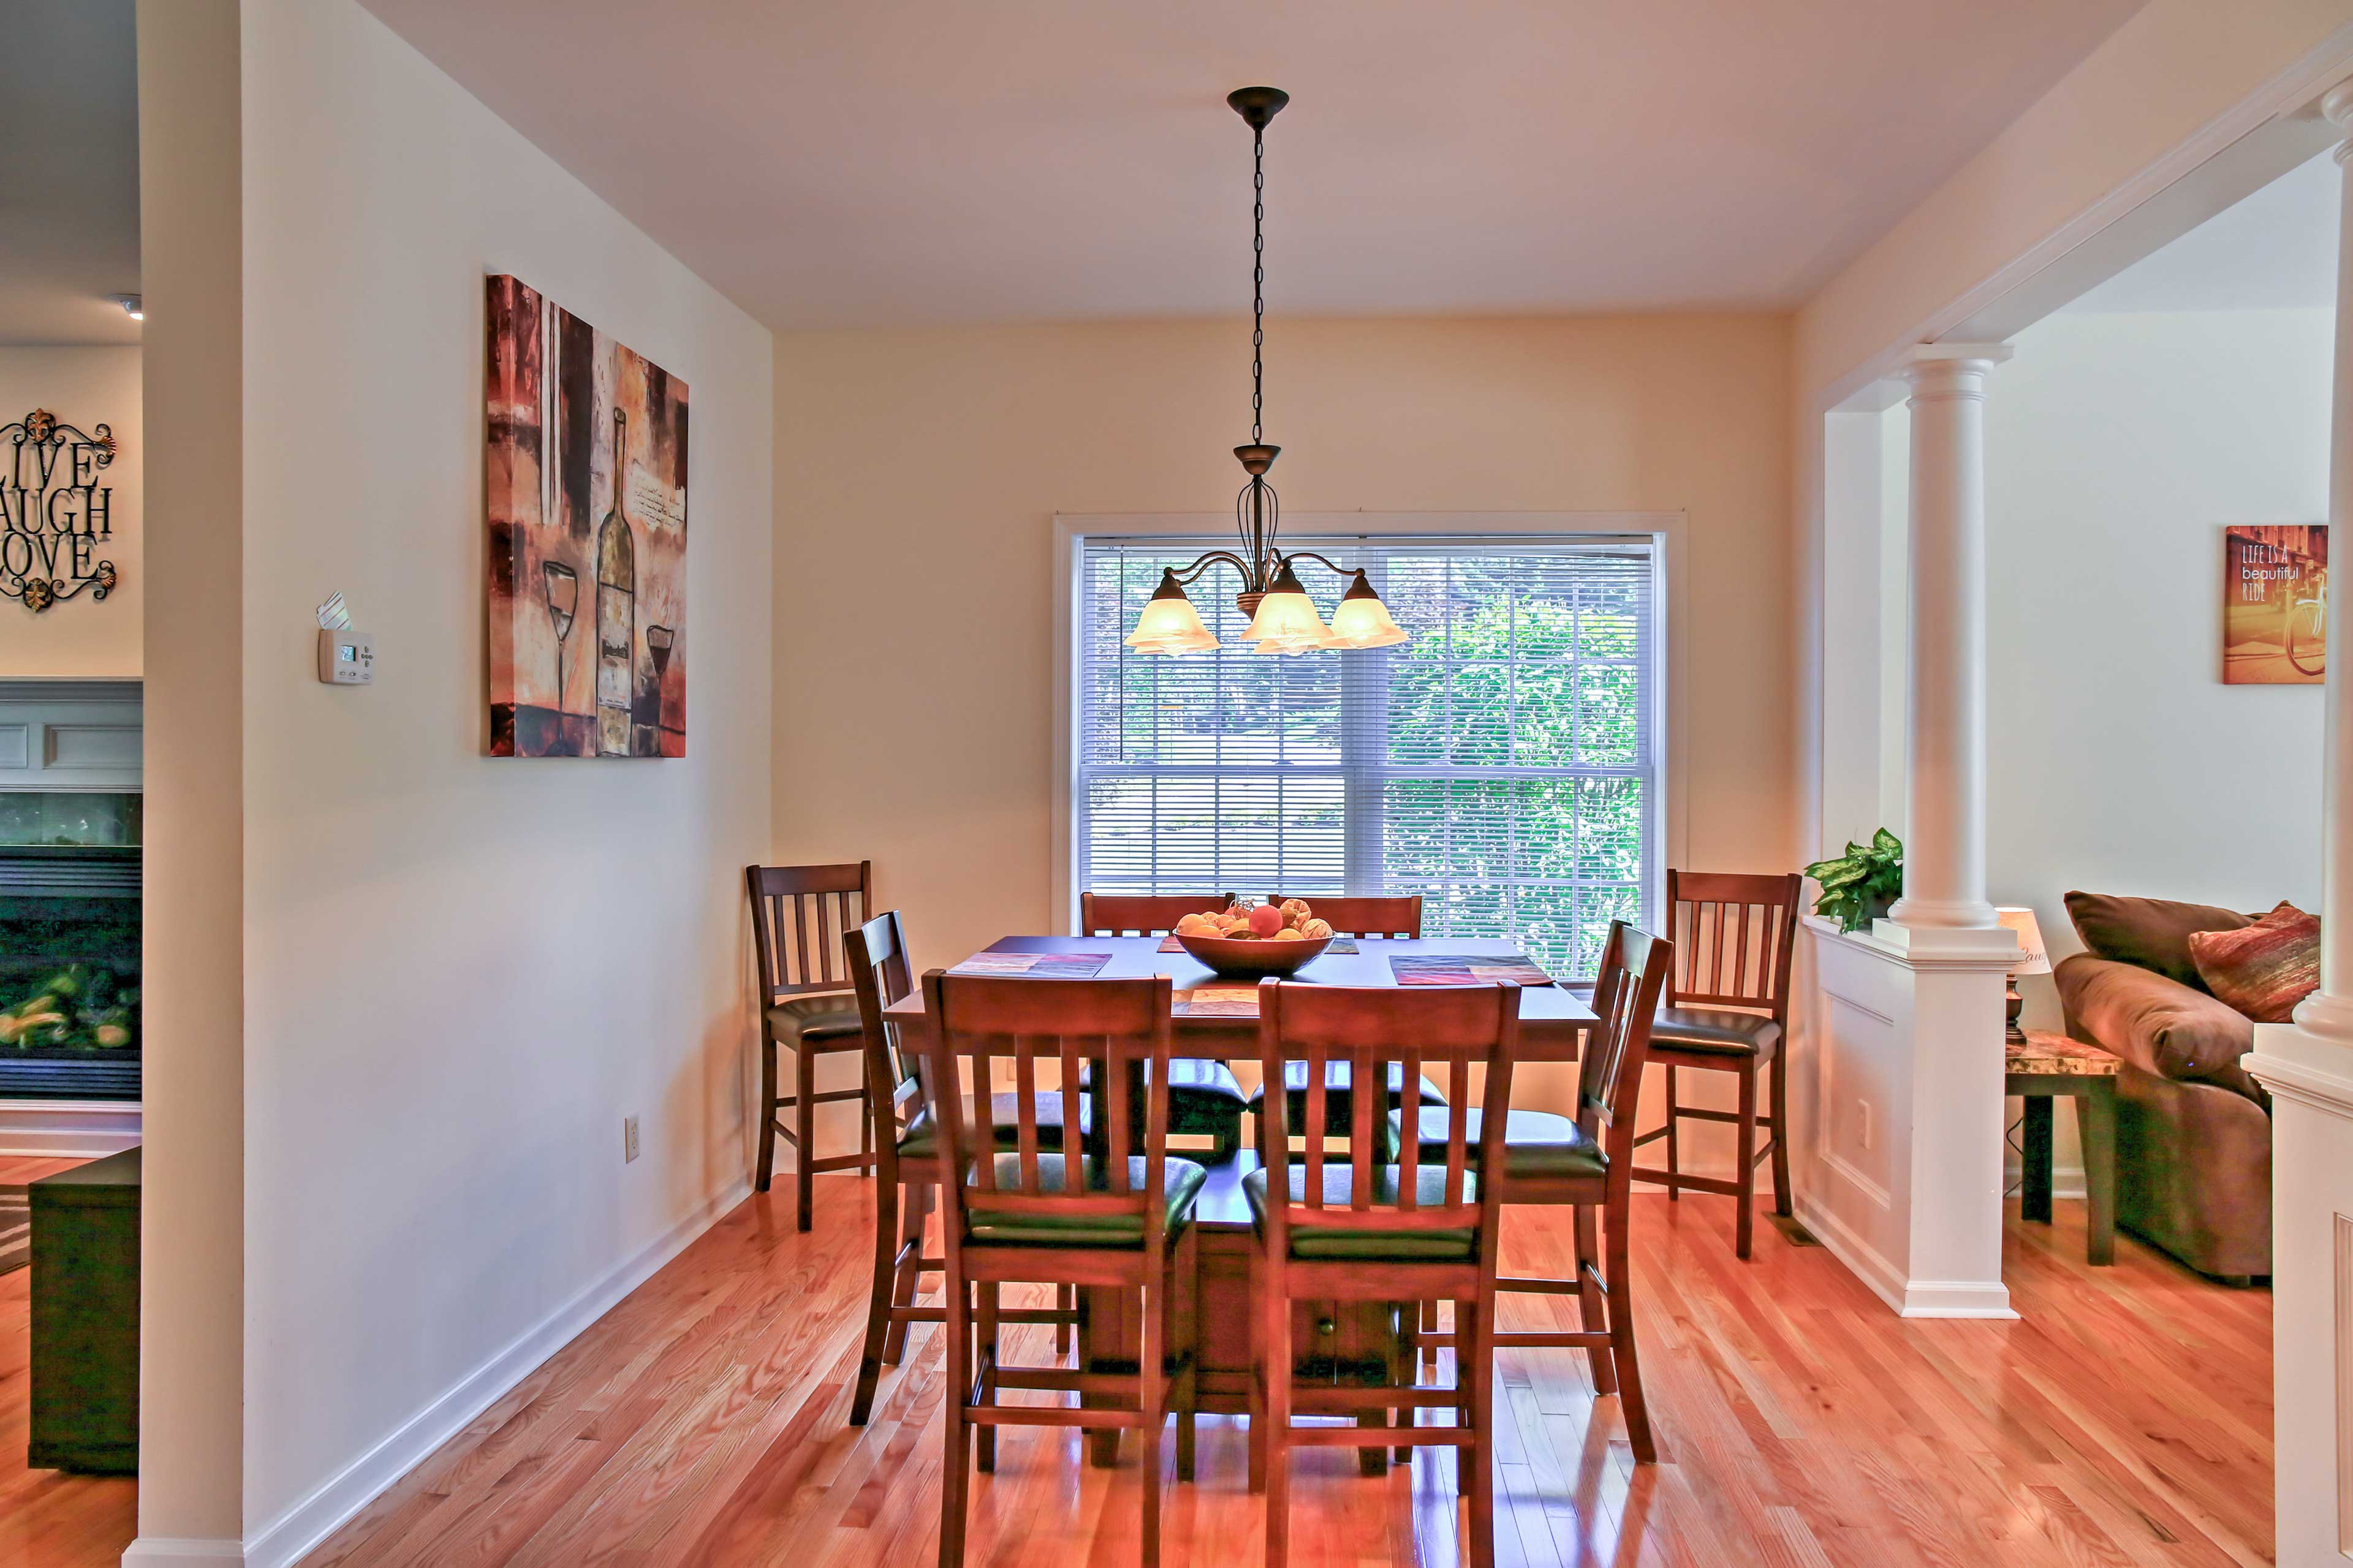 Share home-cooked meals at the elegant dining table with room for 8.